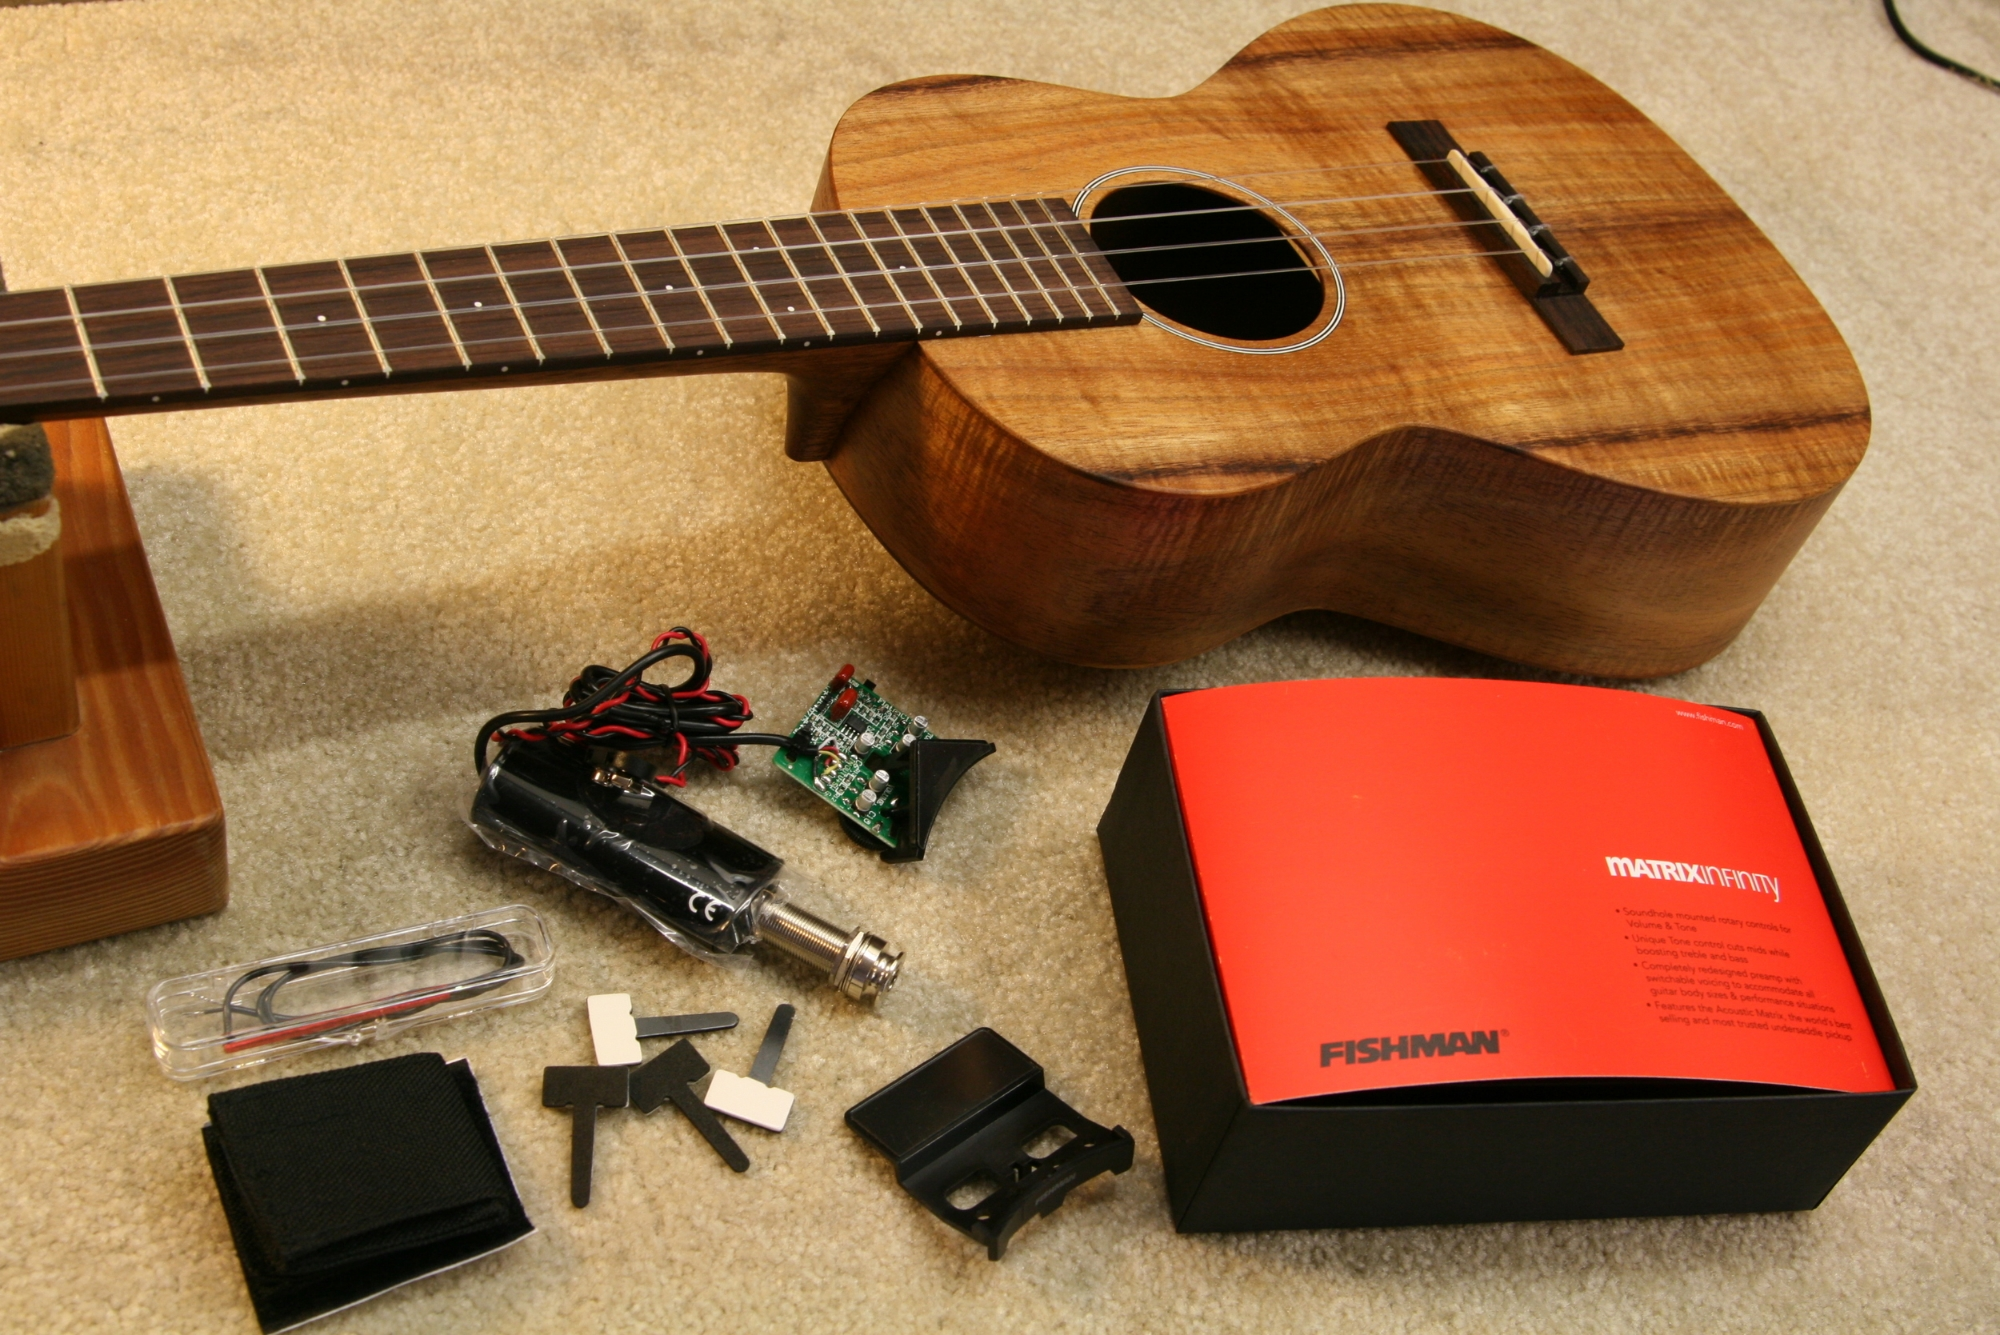 Fishman pickup installation on ukulele